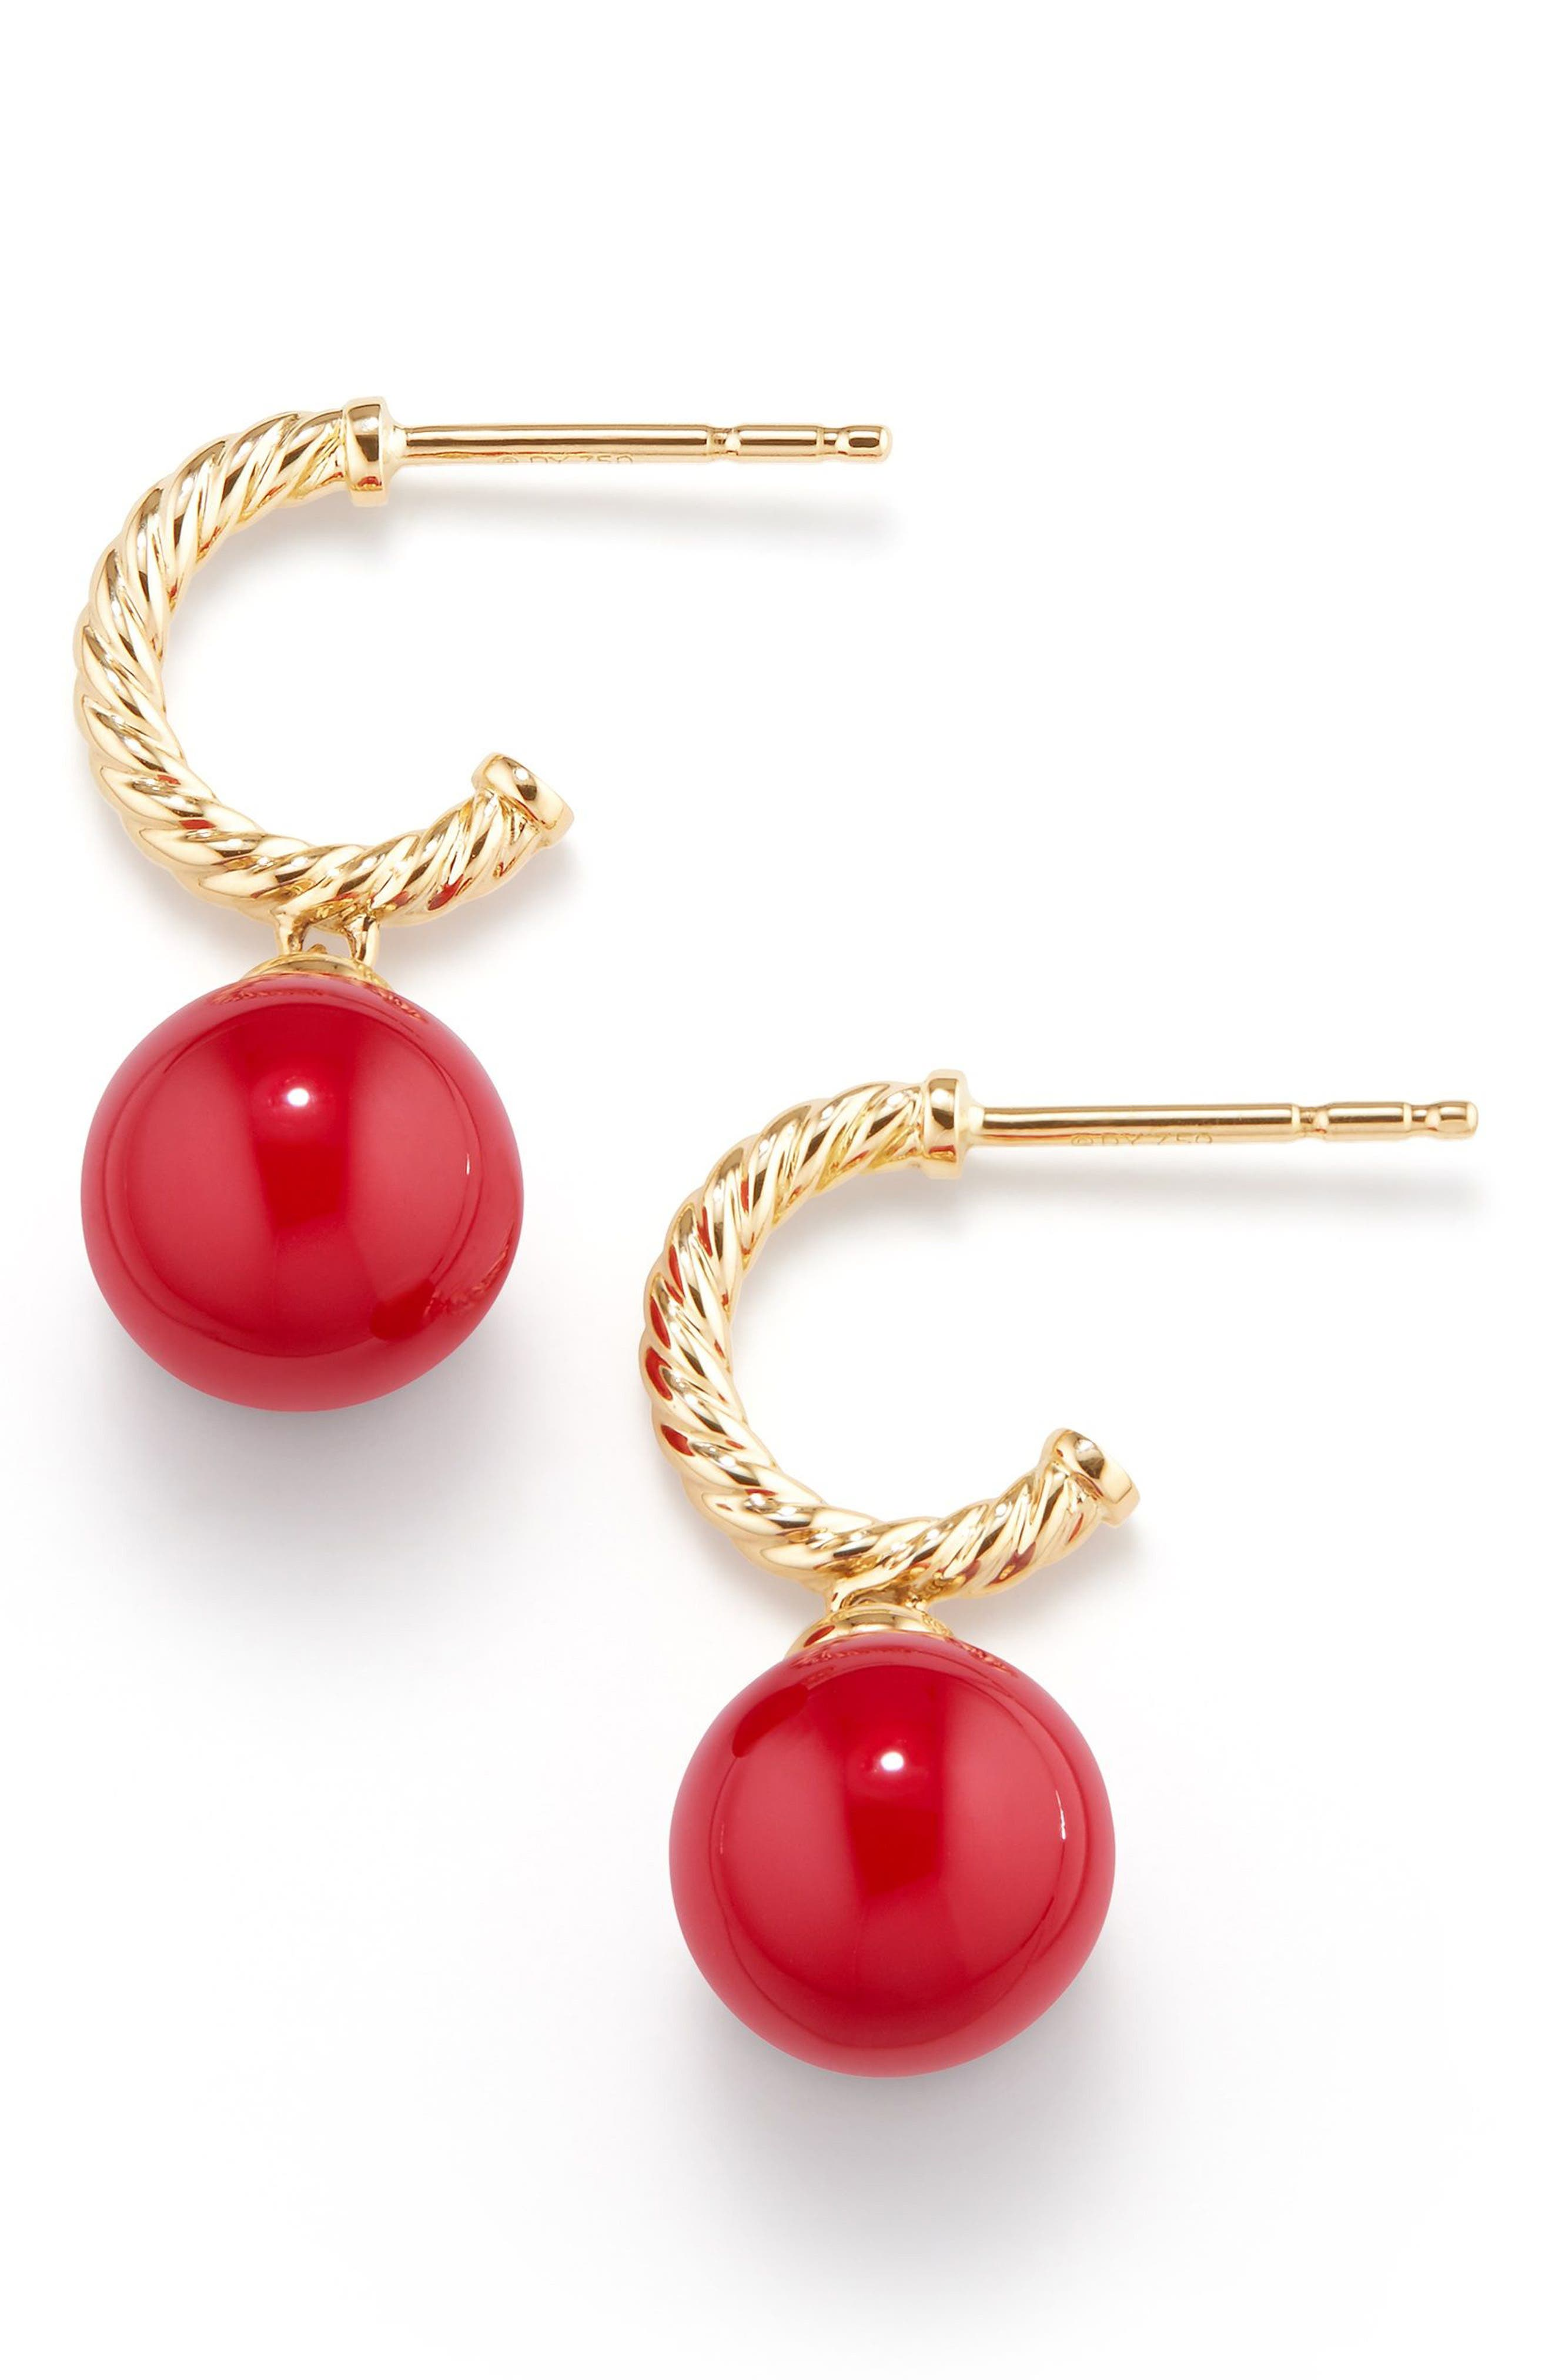 Solari Hoop Earrings with 18K Gold and Red Enamel,                         Main,                         color, Yellow Gold/ Red